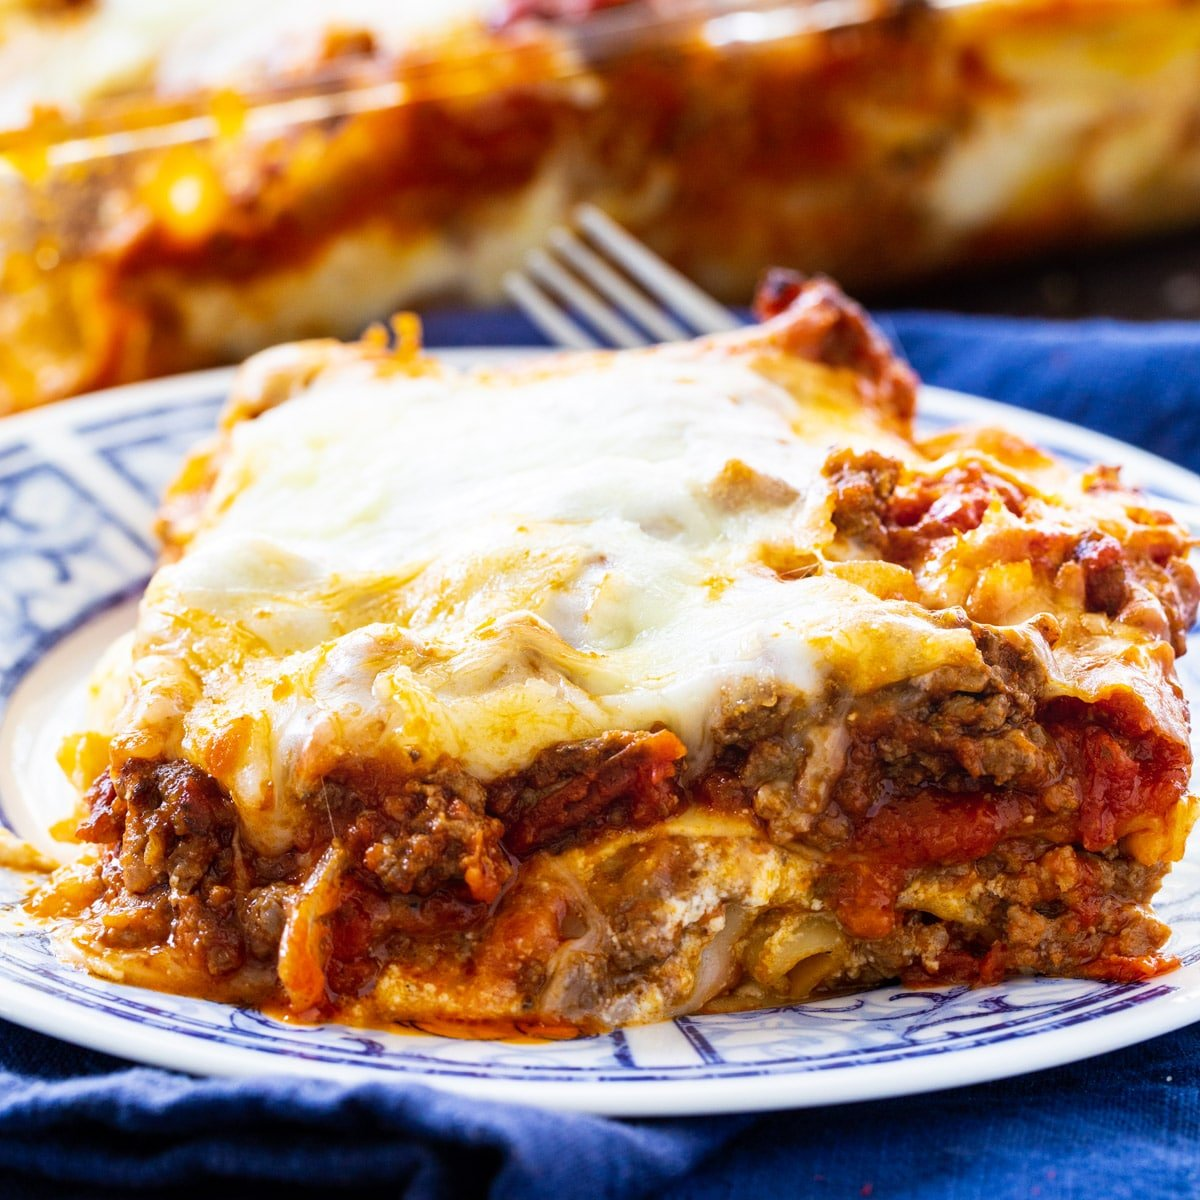 Piece of Make-Ahead Lasagna on a plate.